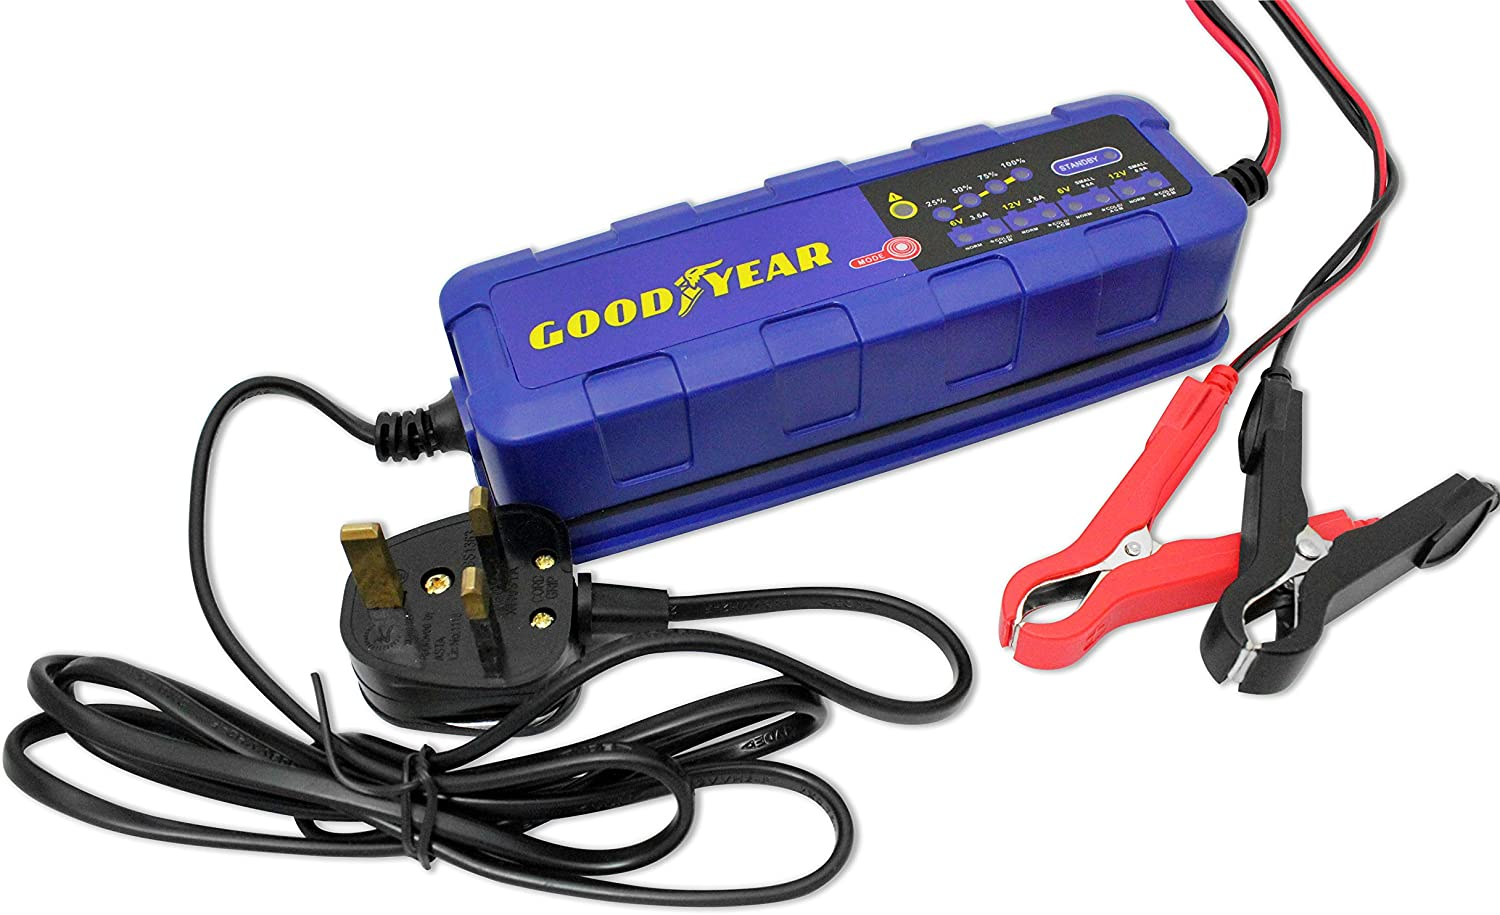 Goodyear Battery Charger Maintainer for 6v 12v Lead Acid and Gel Batteries